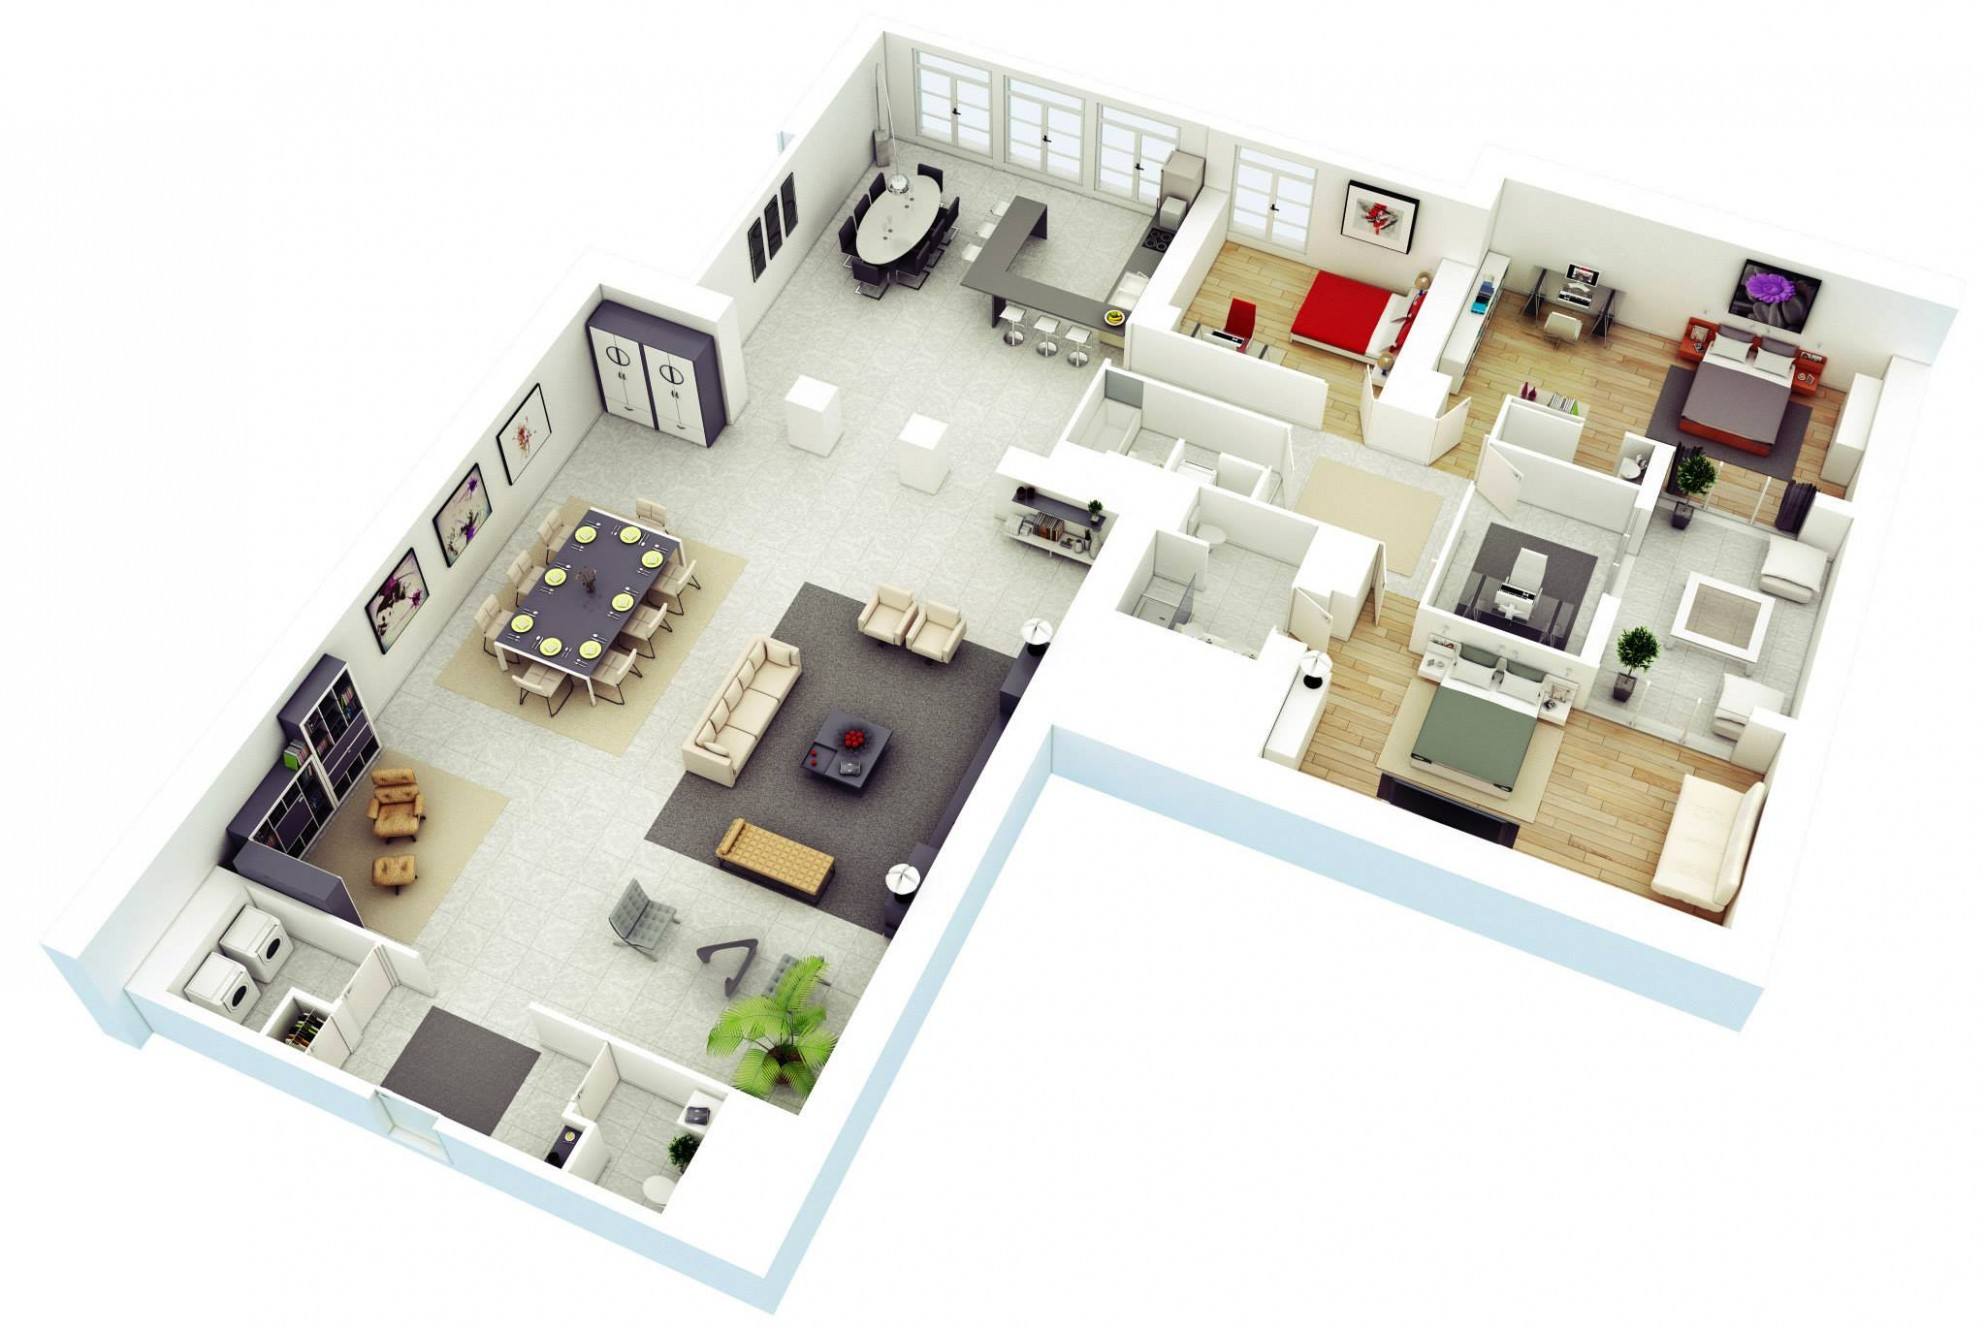 10 Best Free Home and Interior Design Apps, Software and Tools - Apartment Design Software